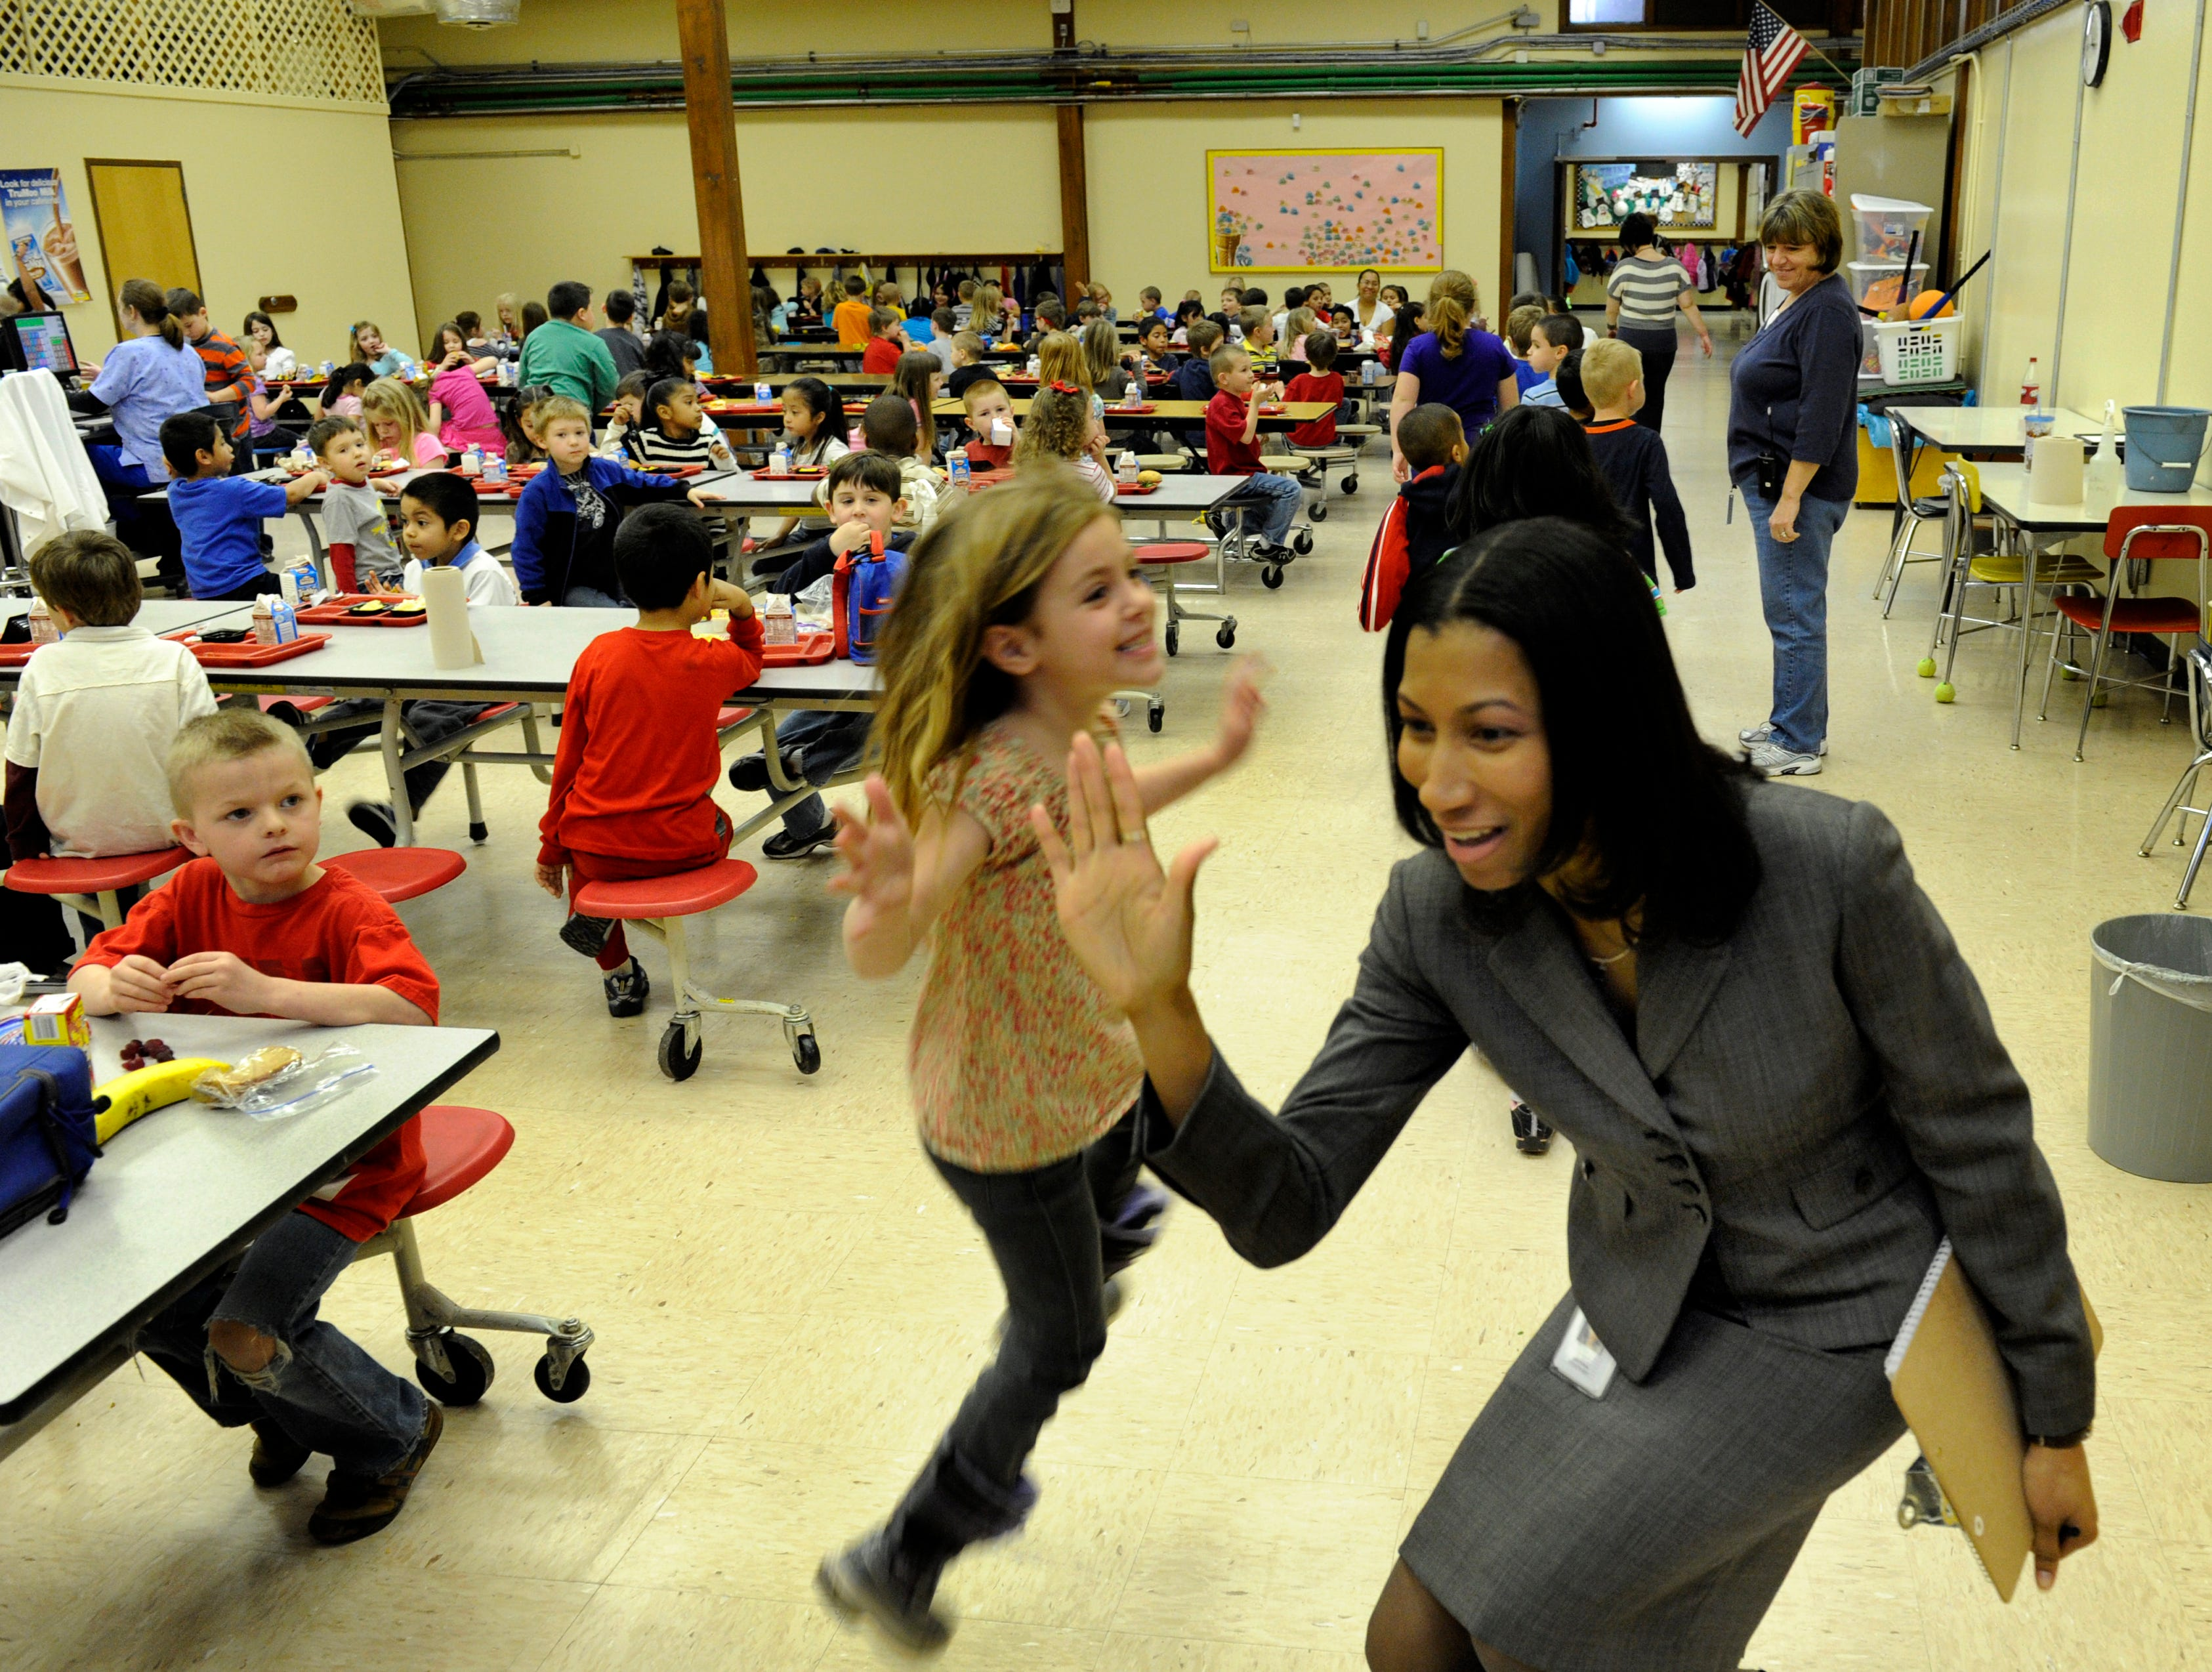 News Sentinel reporter Lydia McCoy gives a high-five to Trinity Brown as they pass each other in the lunchroom Tuesday, Feb. 28, 2012 at Adrian Burnett Elementary School. McCoy was serving as Principal for the Day at the North Knoxville school. McCoy spent the day talking to students and observing classroom activities and she had talked at length to Brown in her classroom.